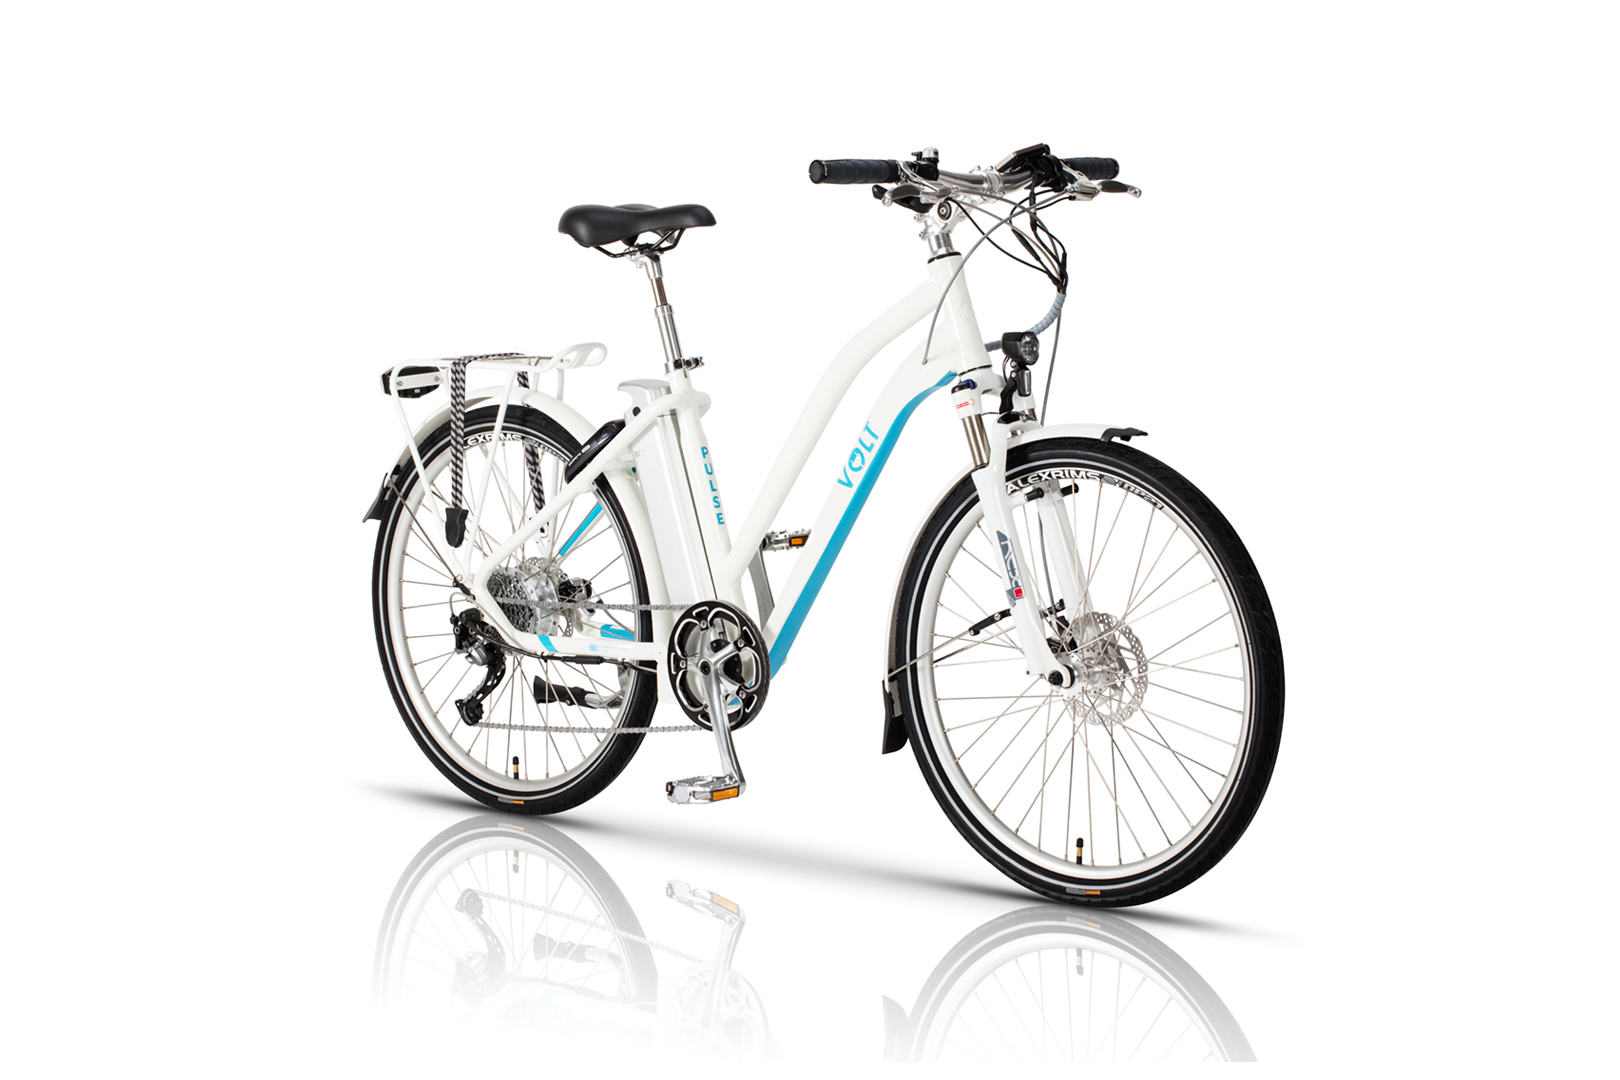 Volt Pulse LS electric bike, studio photograph viewed at an angle with a white background